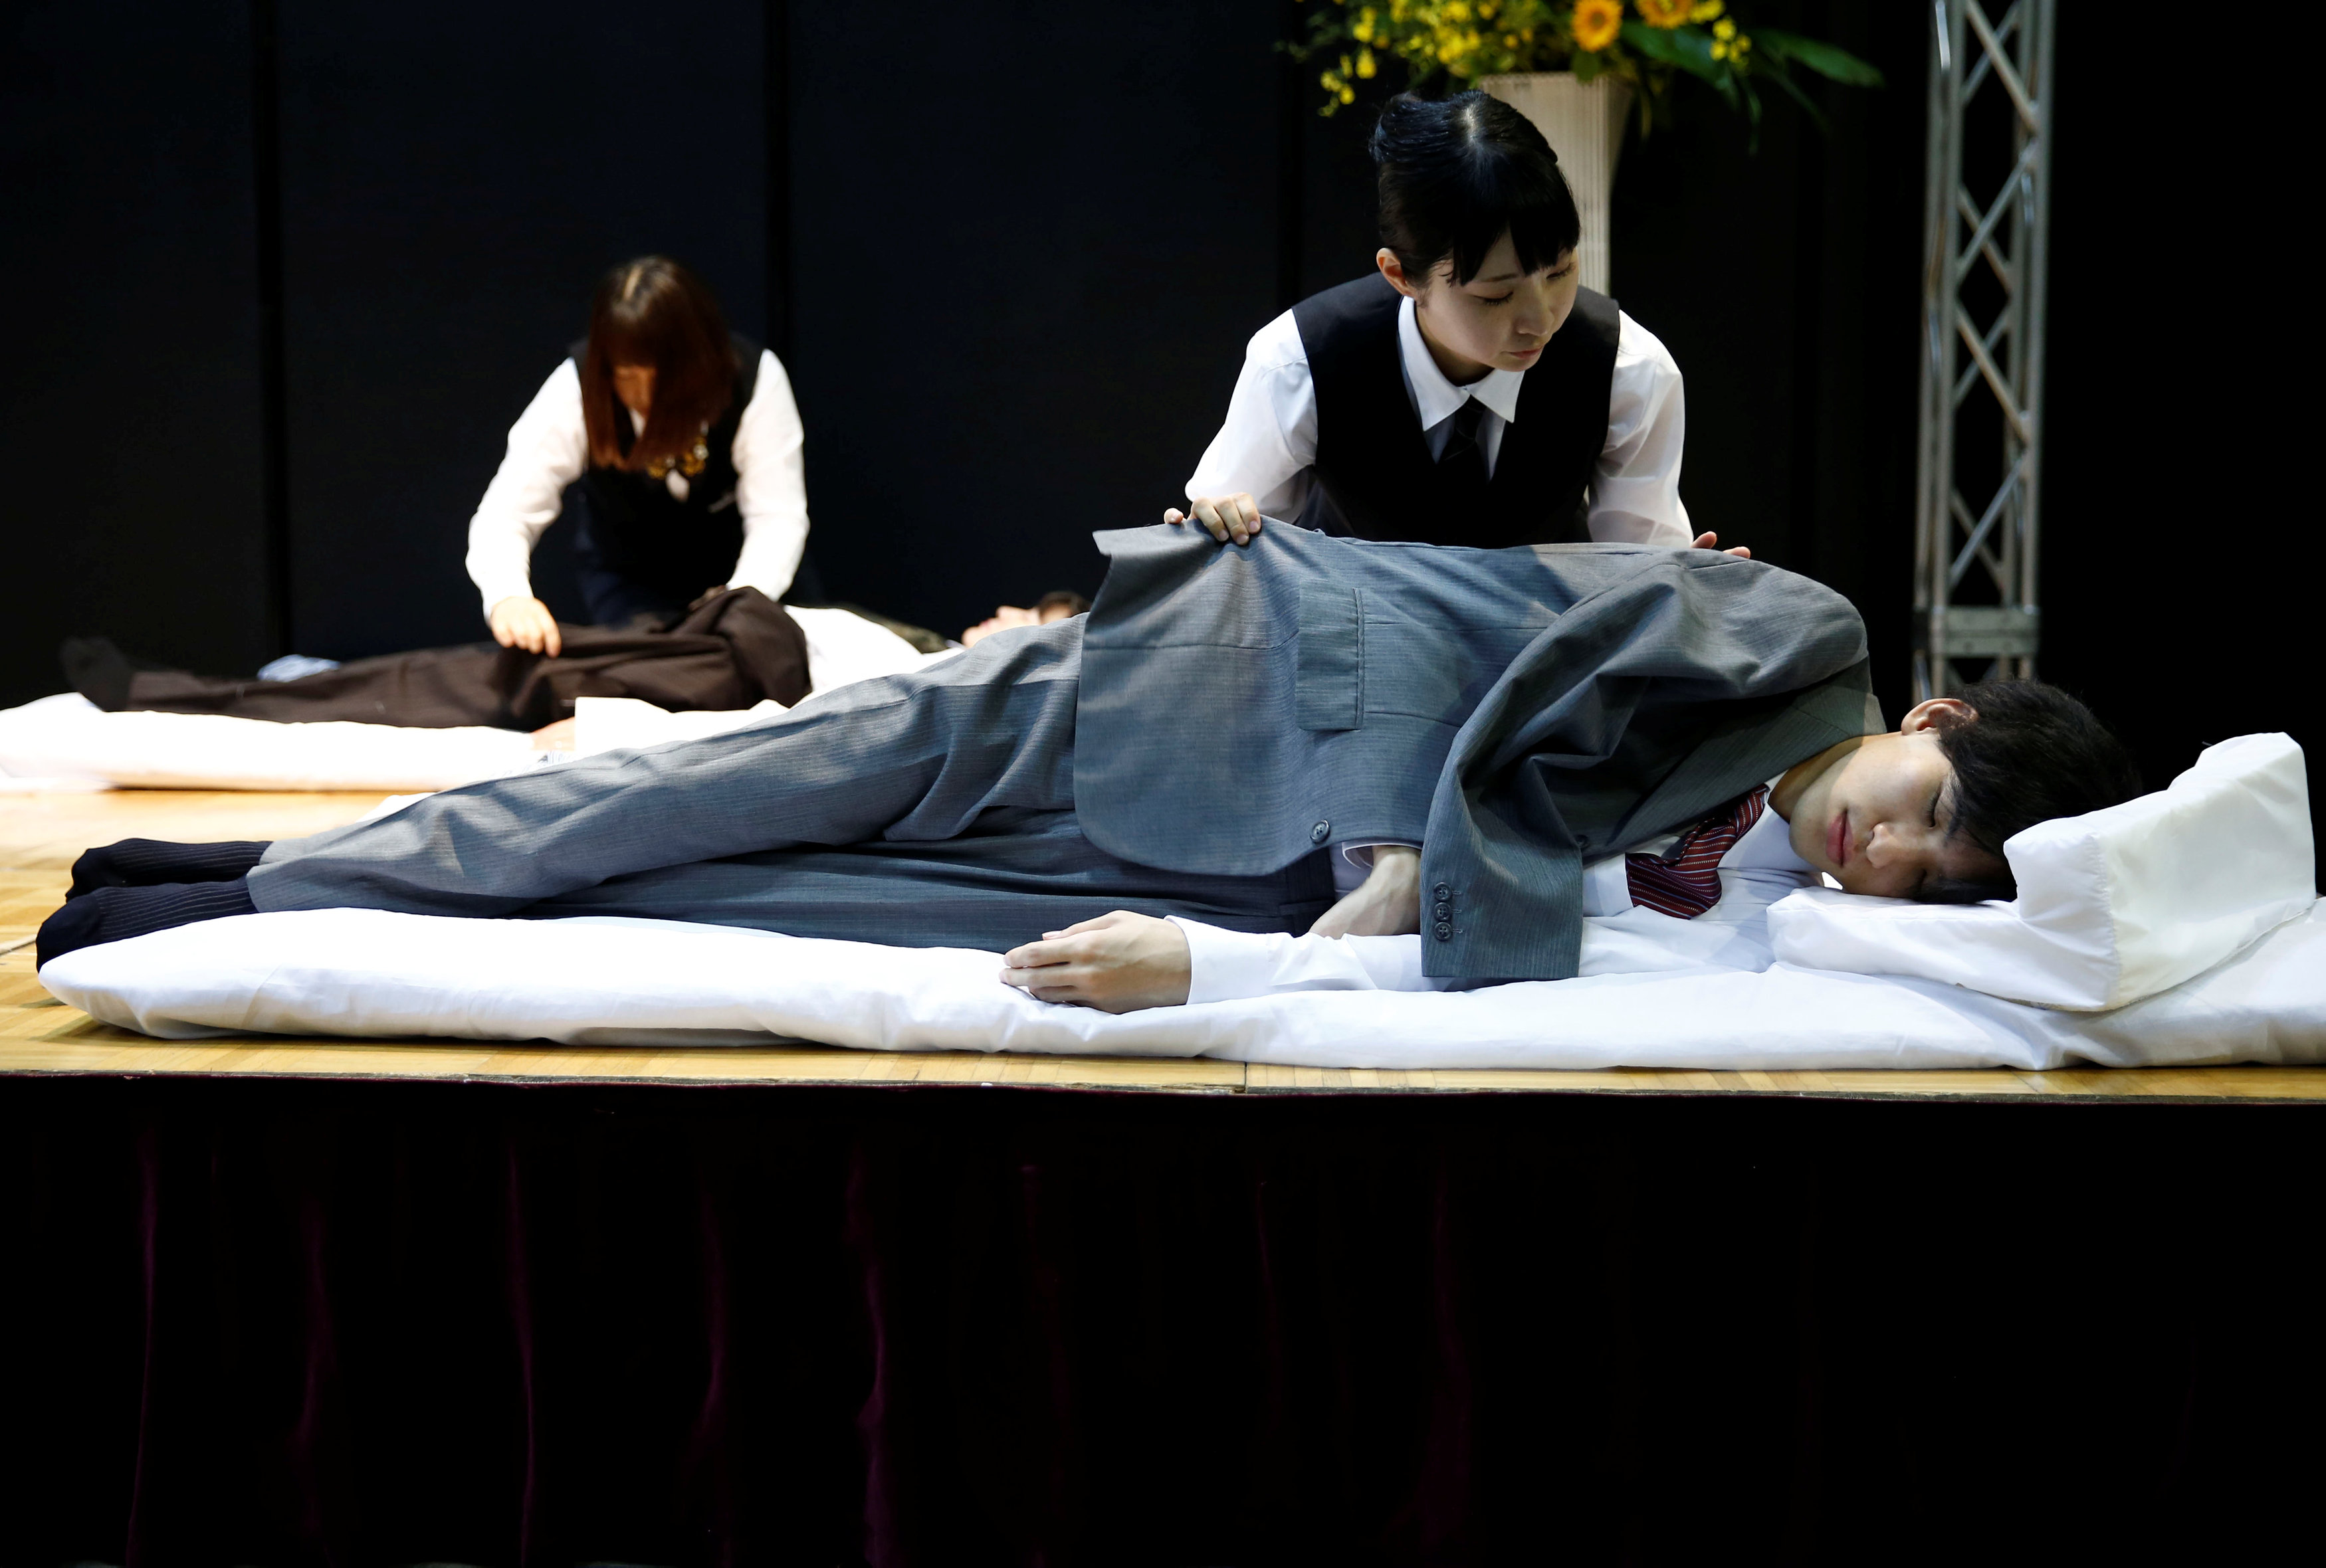 Funeral undertakers dress models during an encoffinment competition at Life Ending Industry EXPO 2017 in Tokyo, Japan August 24, 2017. REUTERS/Kim Kyung-Hoon